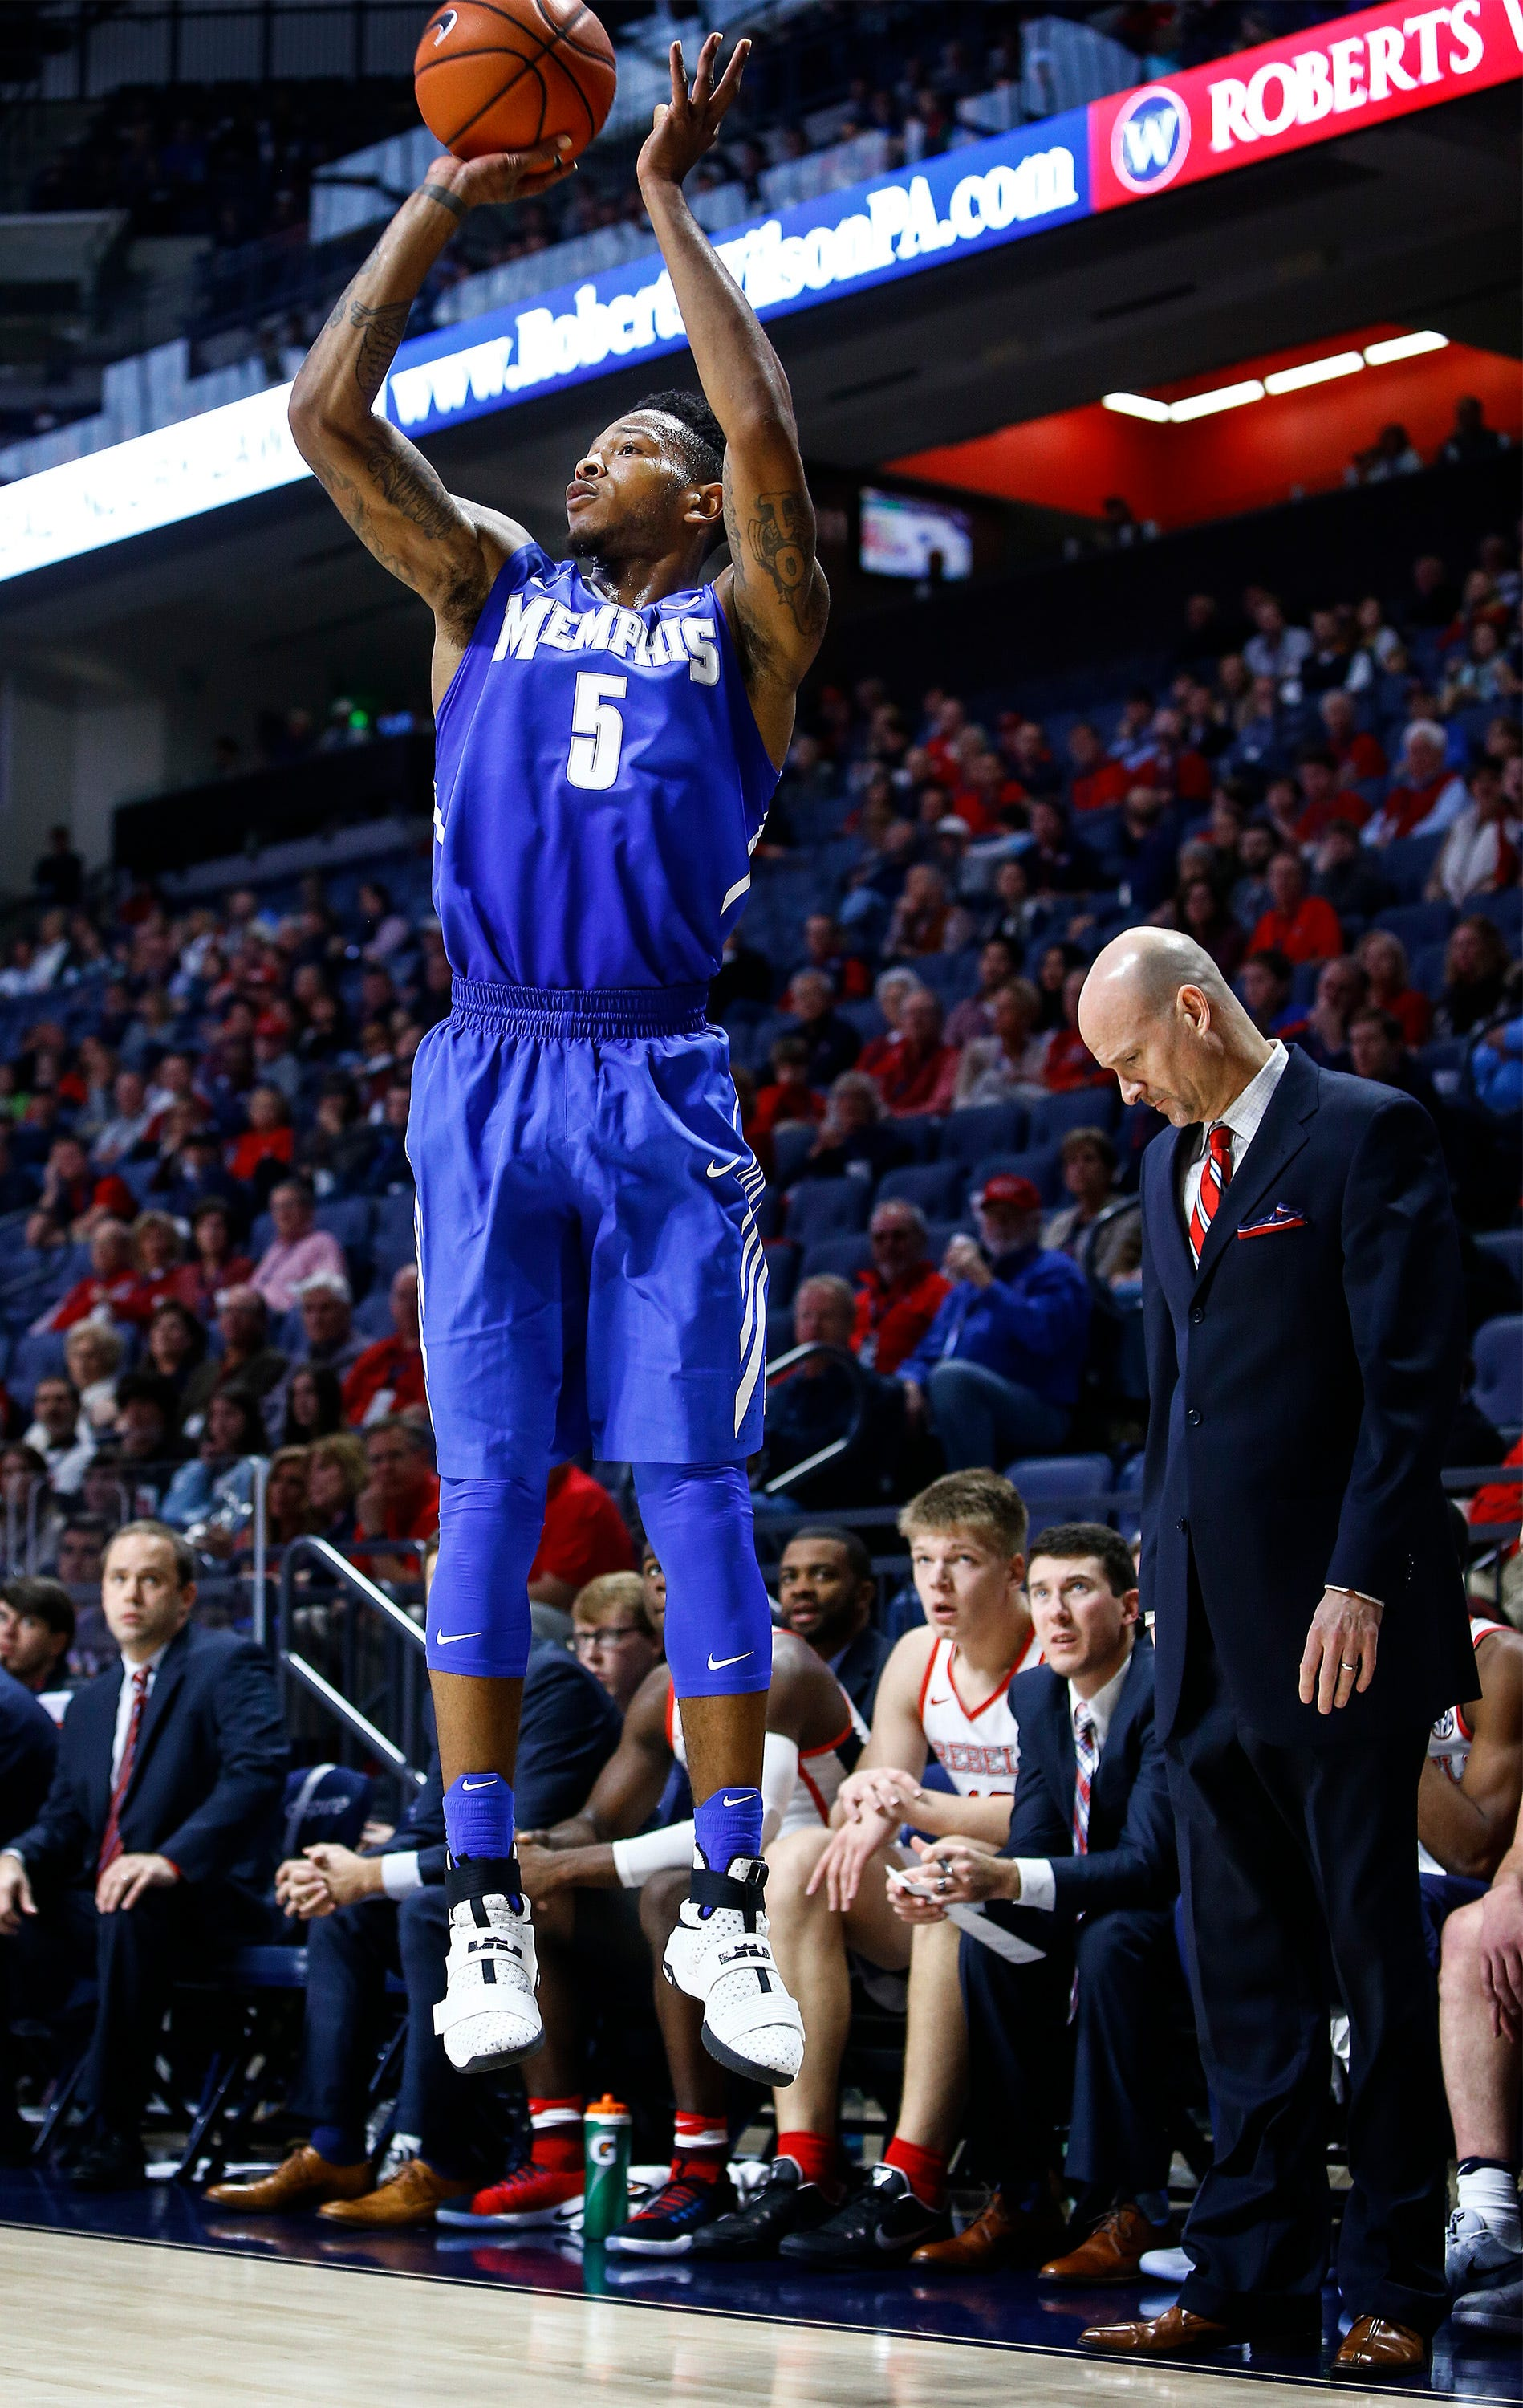 Markel Crawford is transferring to Ole Miss